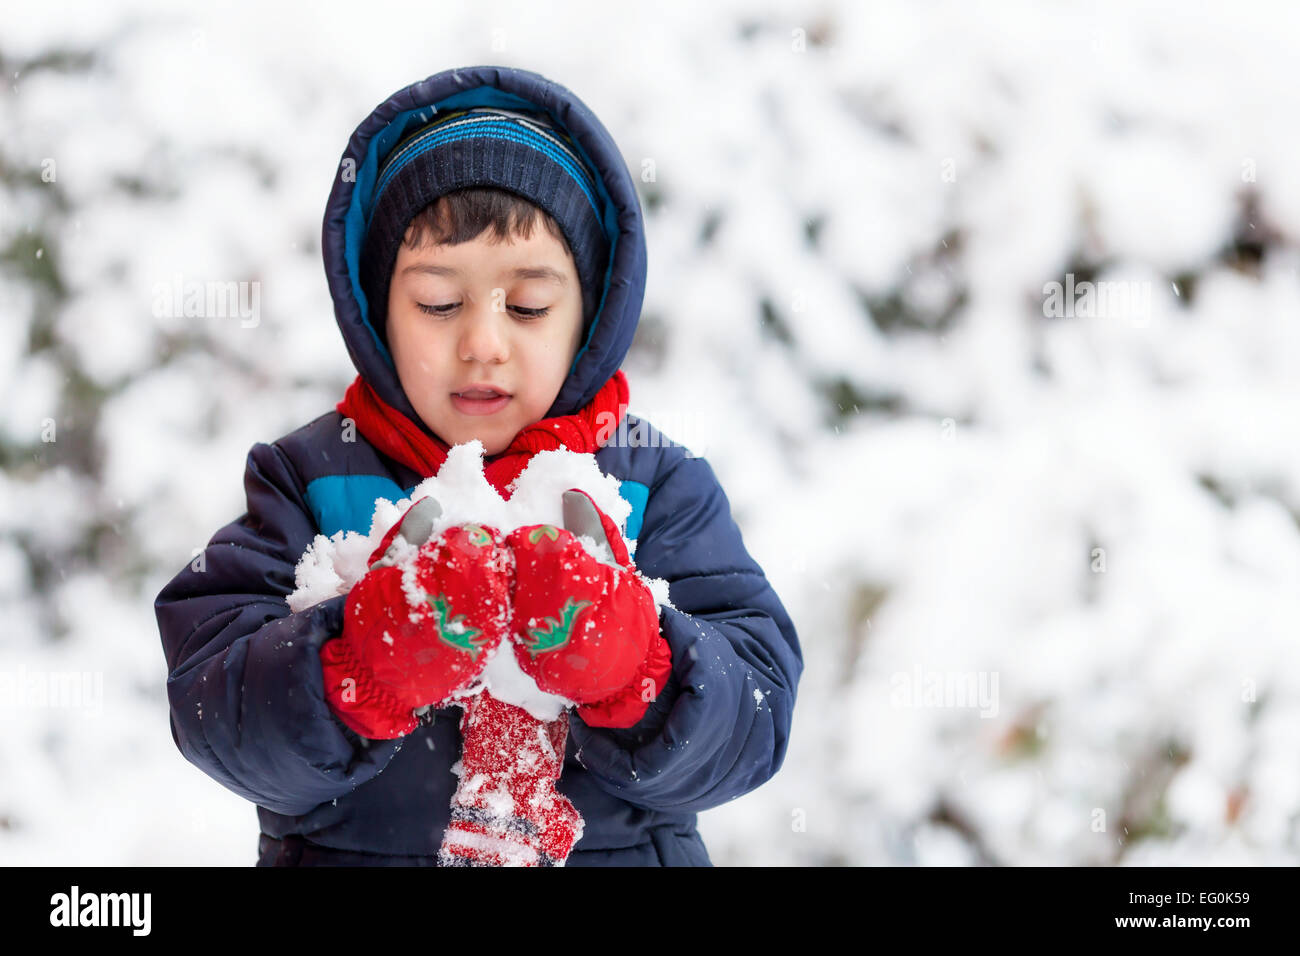 Bulgaria, Sofia, Young boy (4-5) holding snow - Stock Image